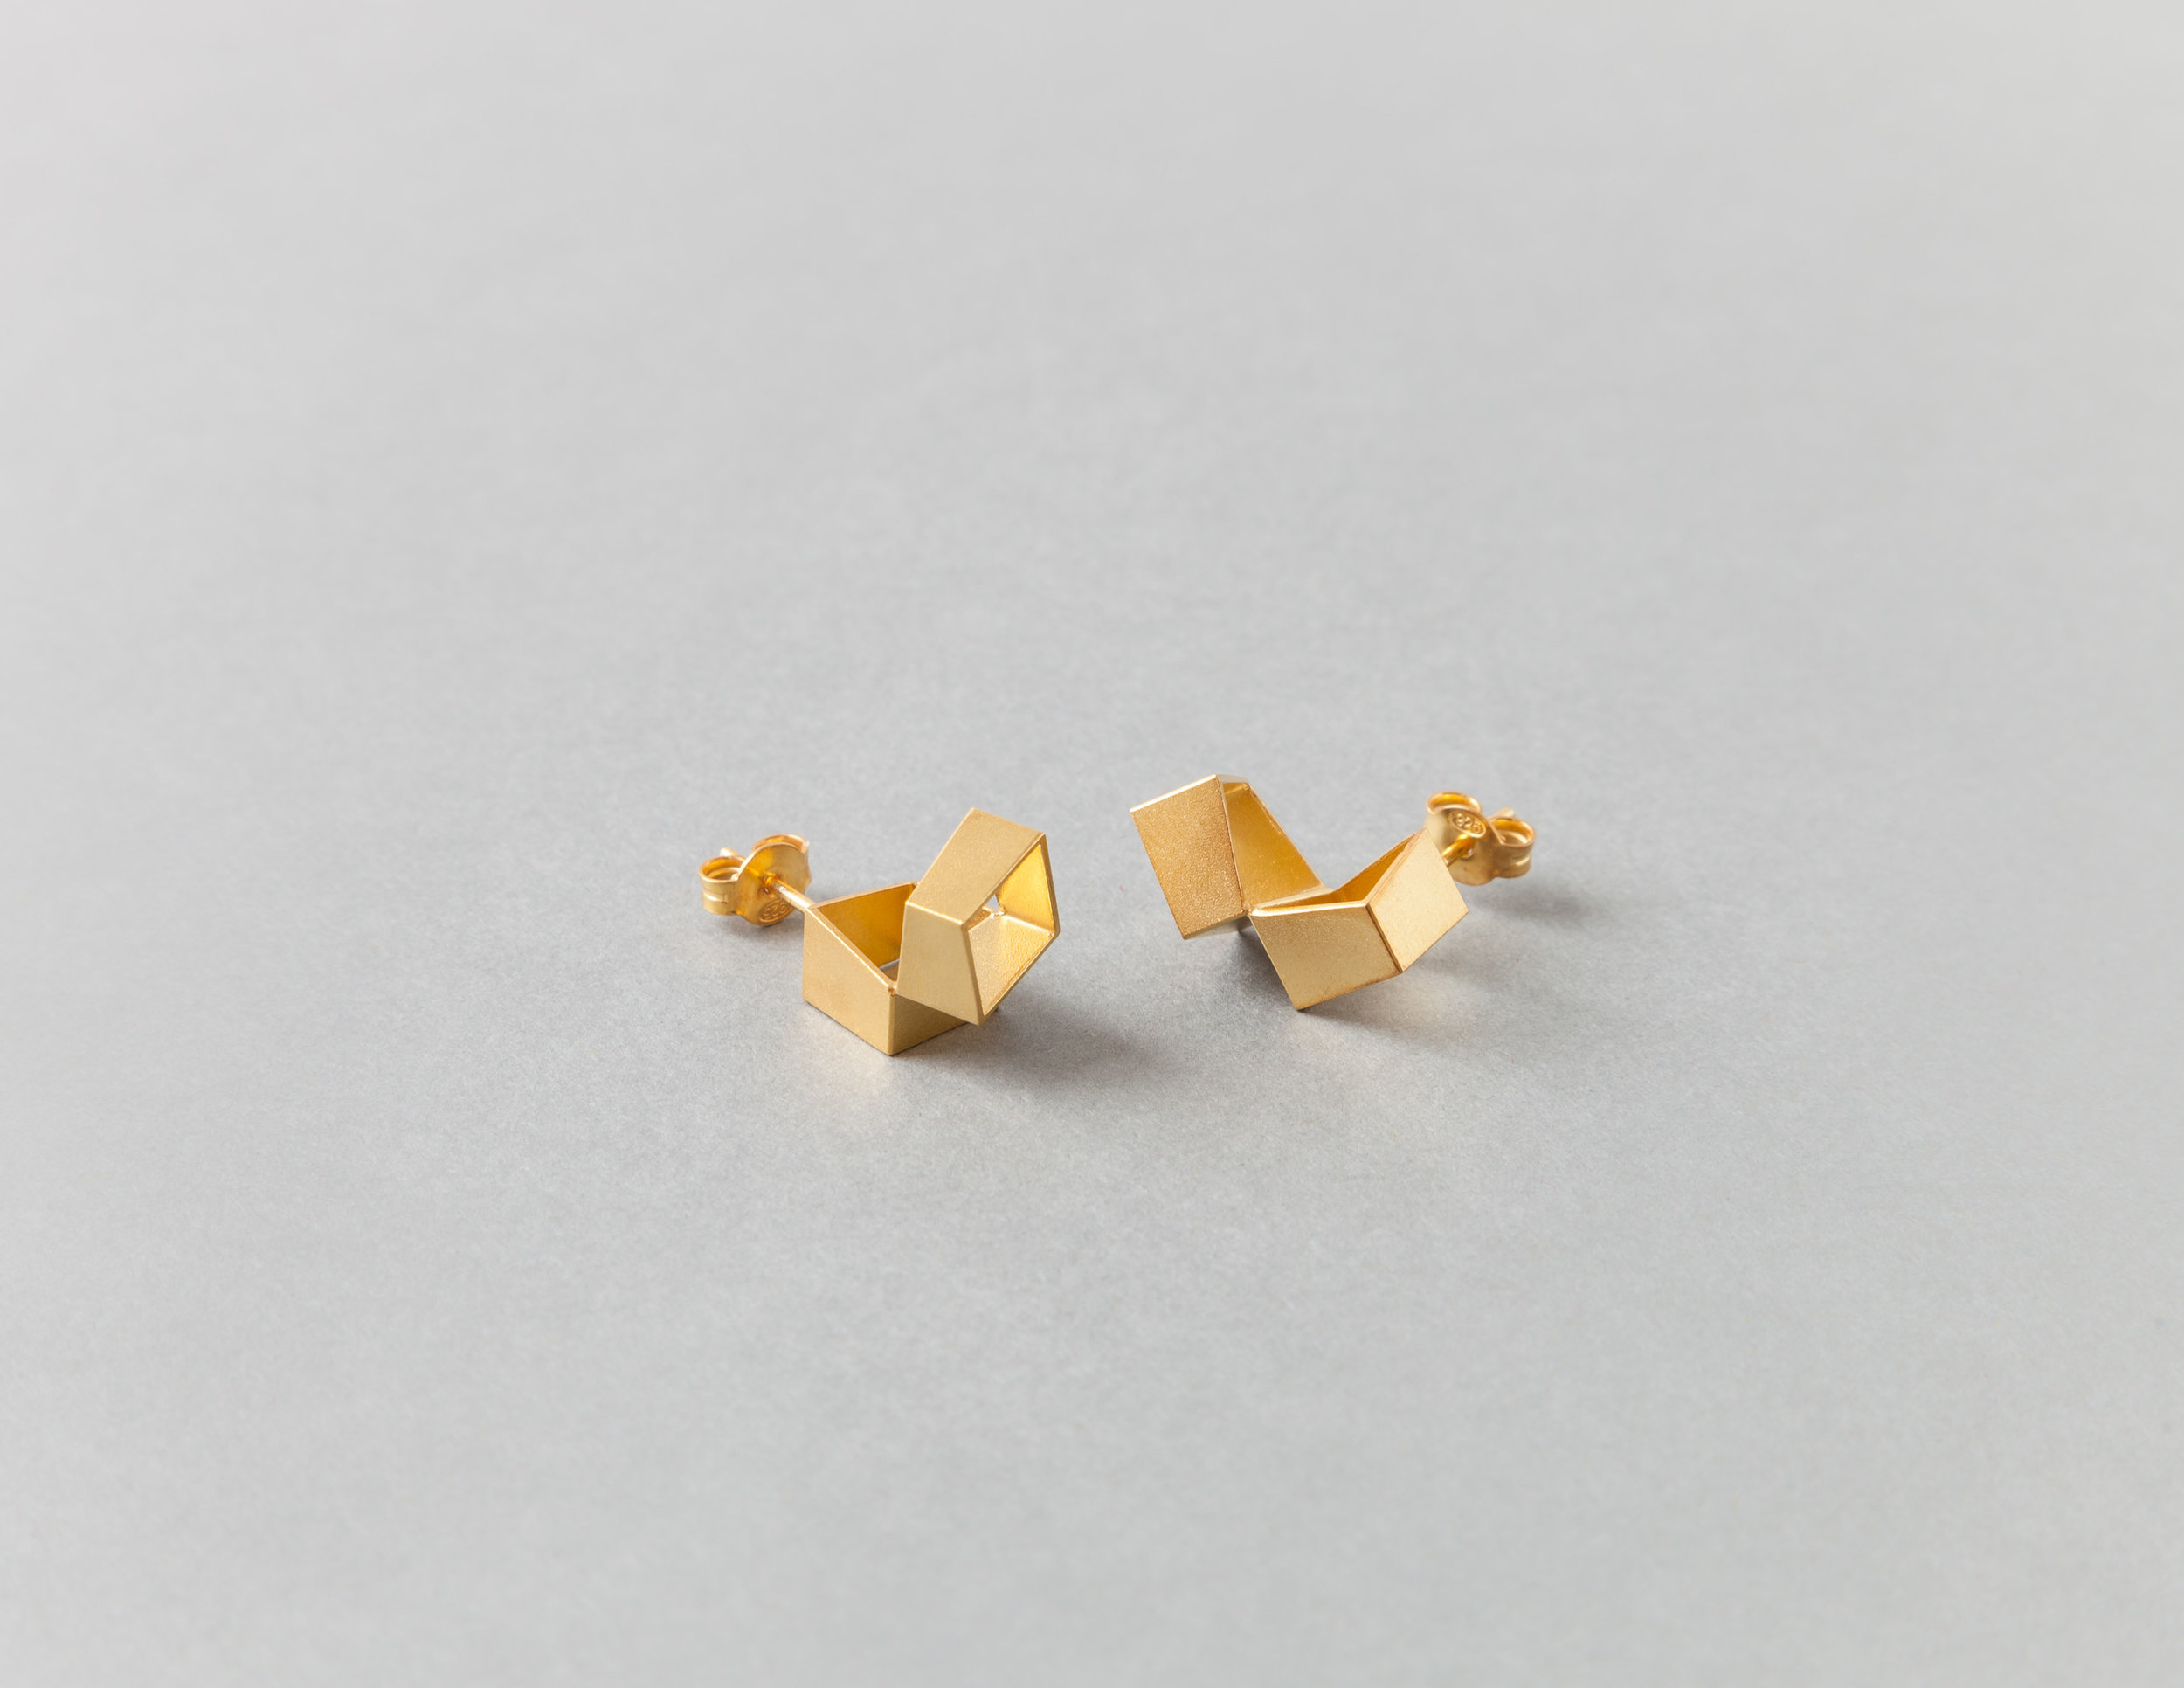 Alma Sophia Design - 8x8 studs yellow gold plated.jpg